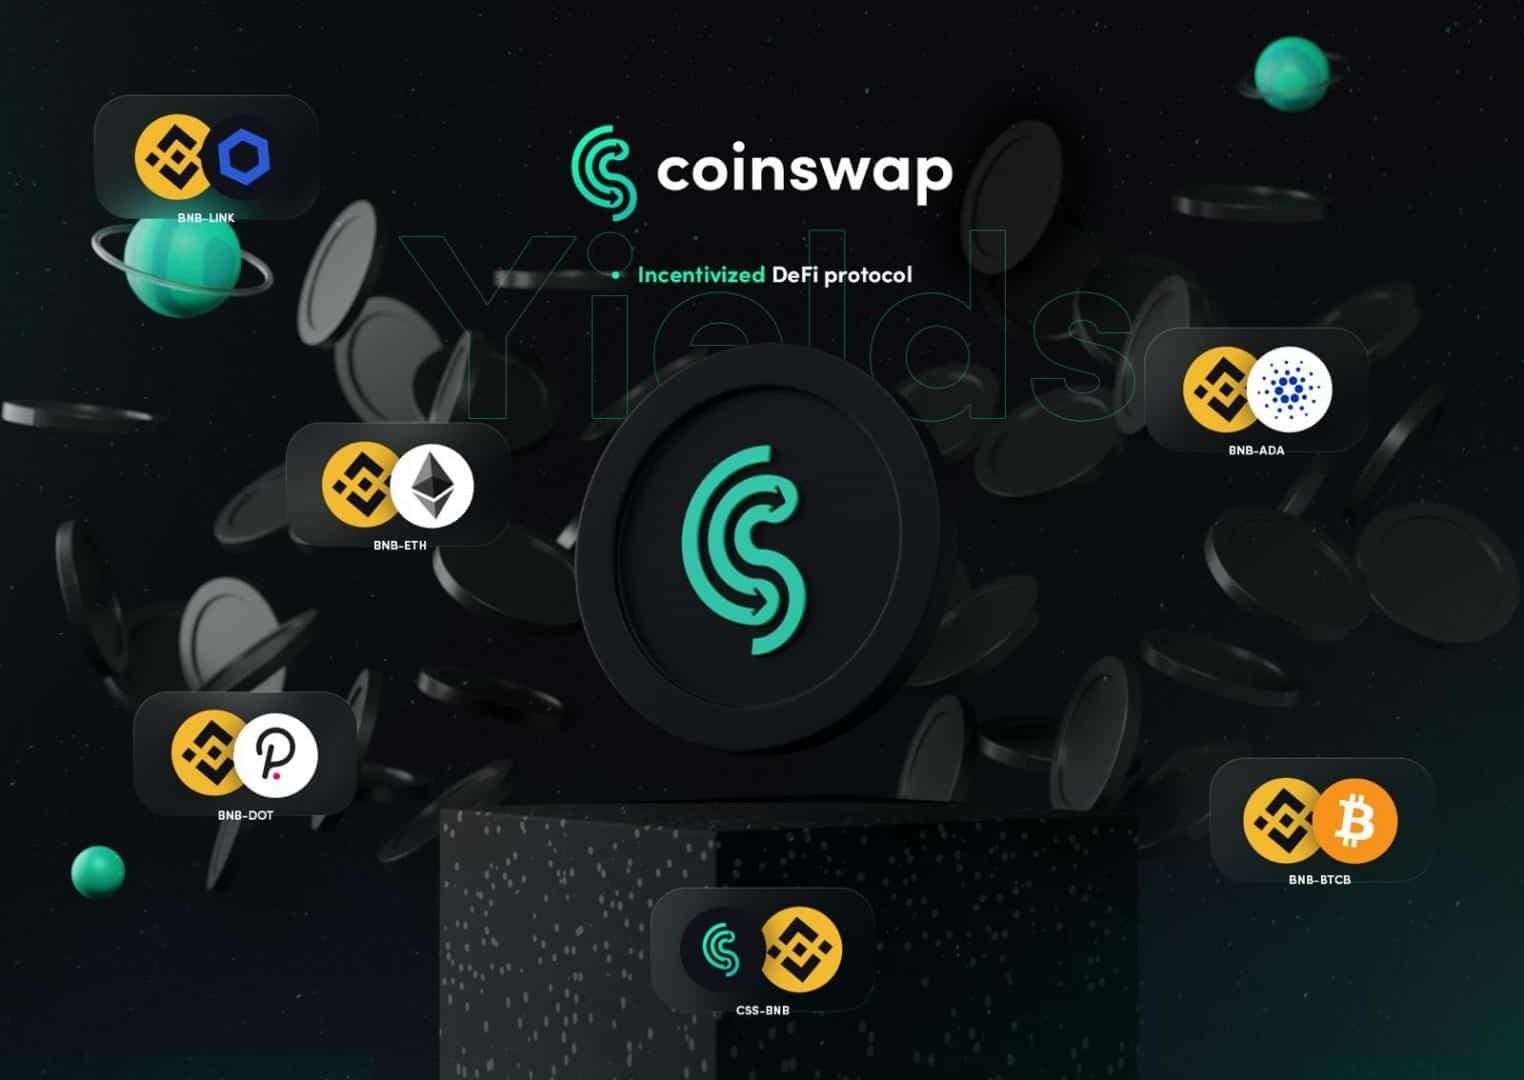 CoinSwap Space Adds Staking Pools With ADA Rewards